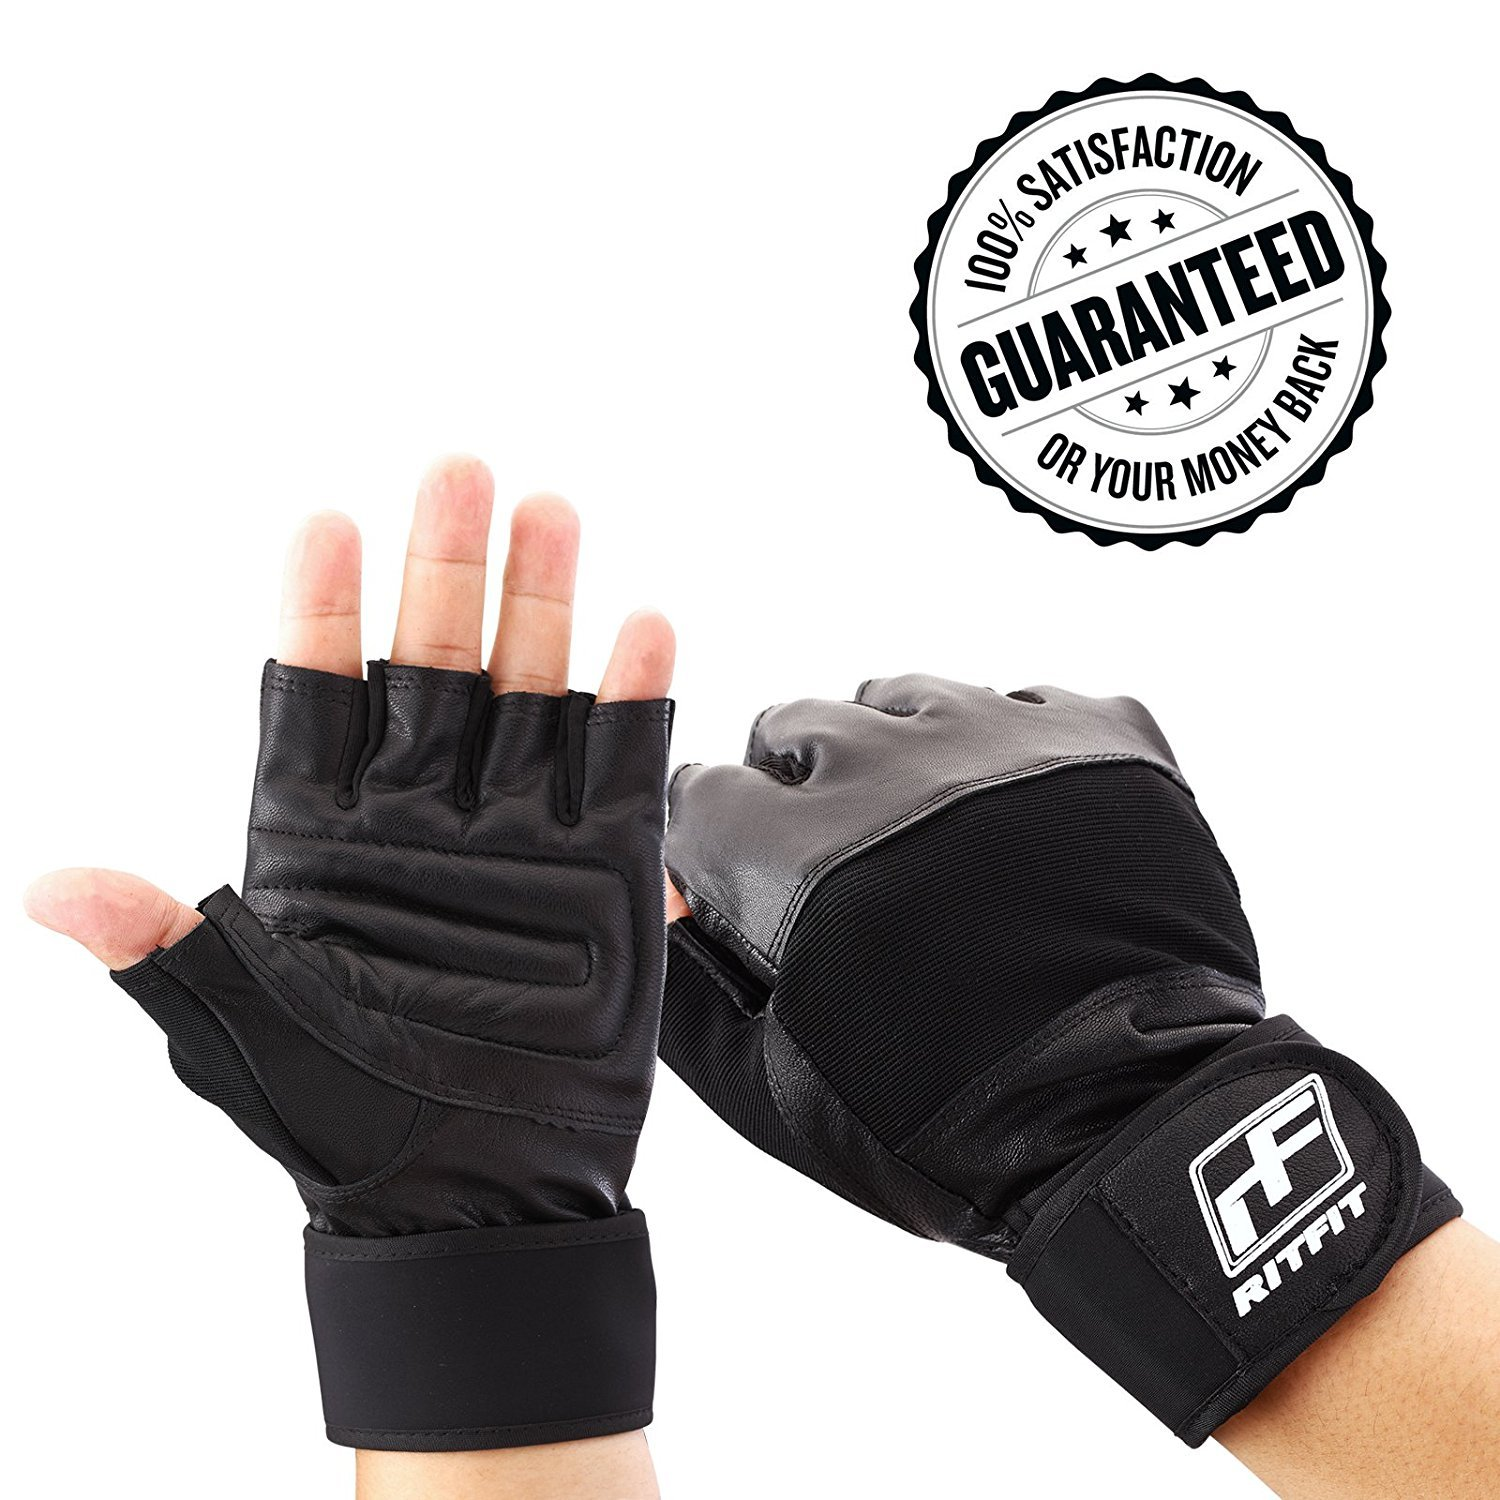 Gym Gloves With Integrated Wrist Support For Gym Workout, CrossFit, Weightlifting, Pullups, Fitness & Cross Training-Genuine Soft Leather-Perfect for Men and Women65281;